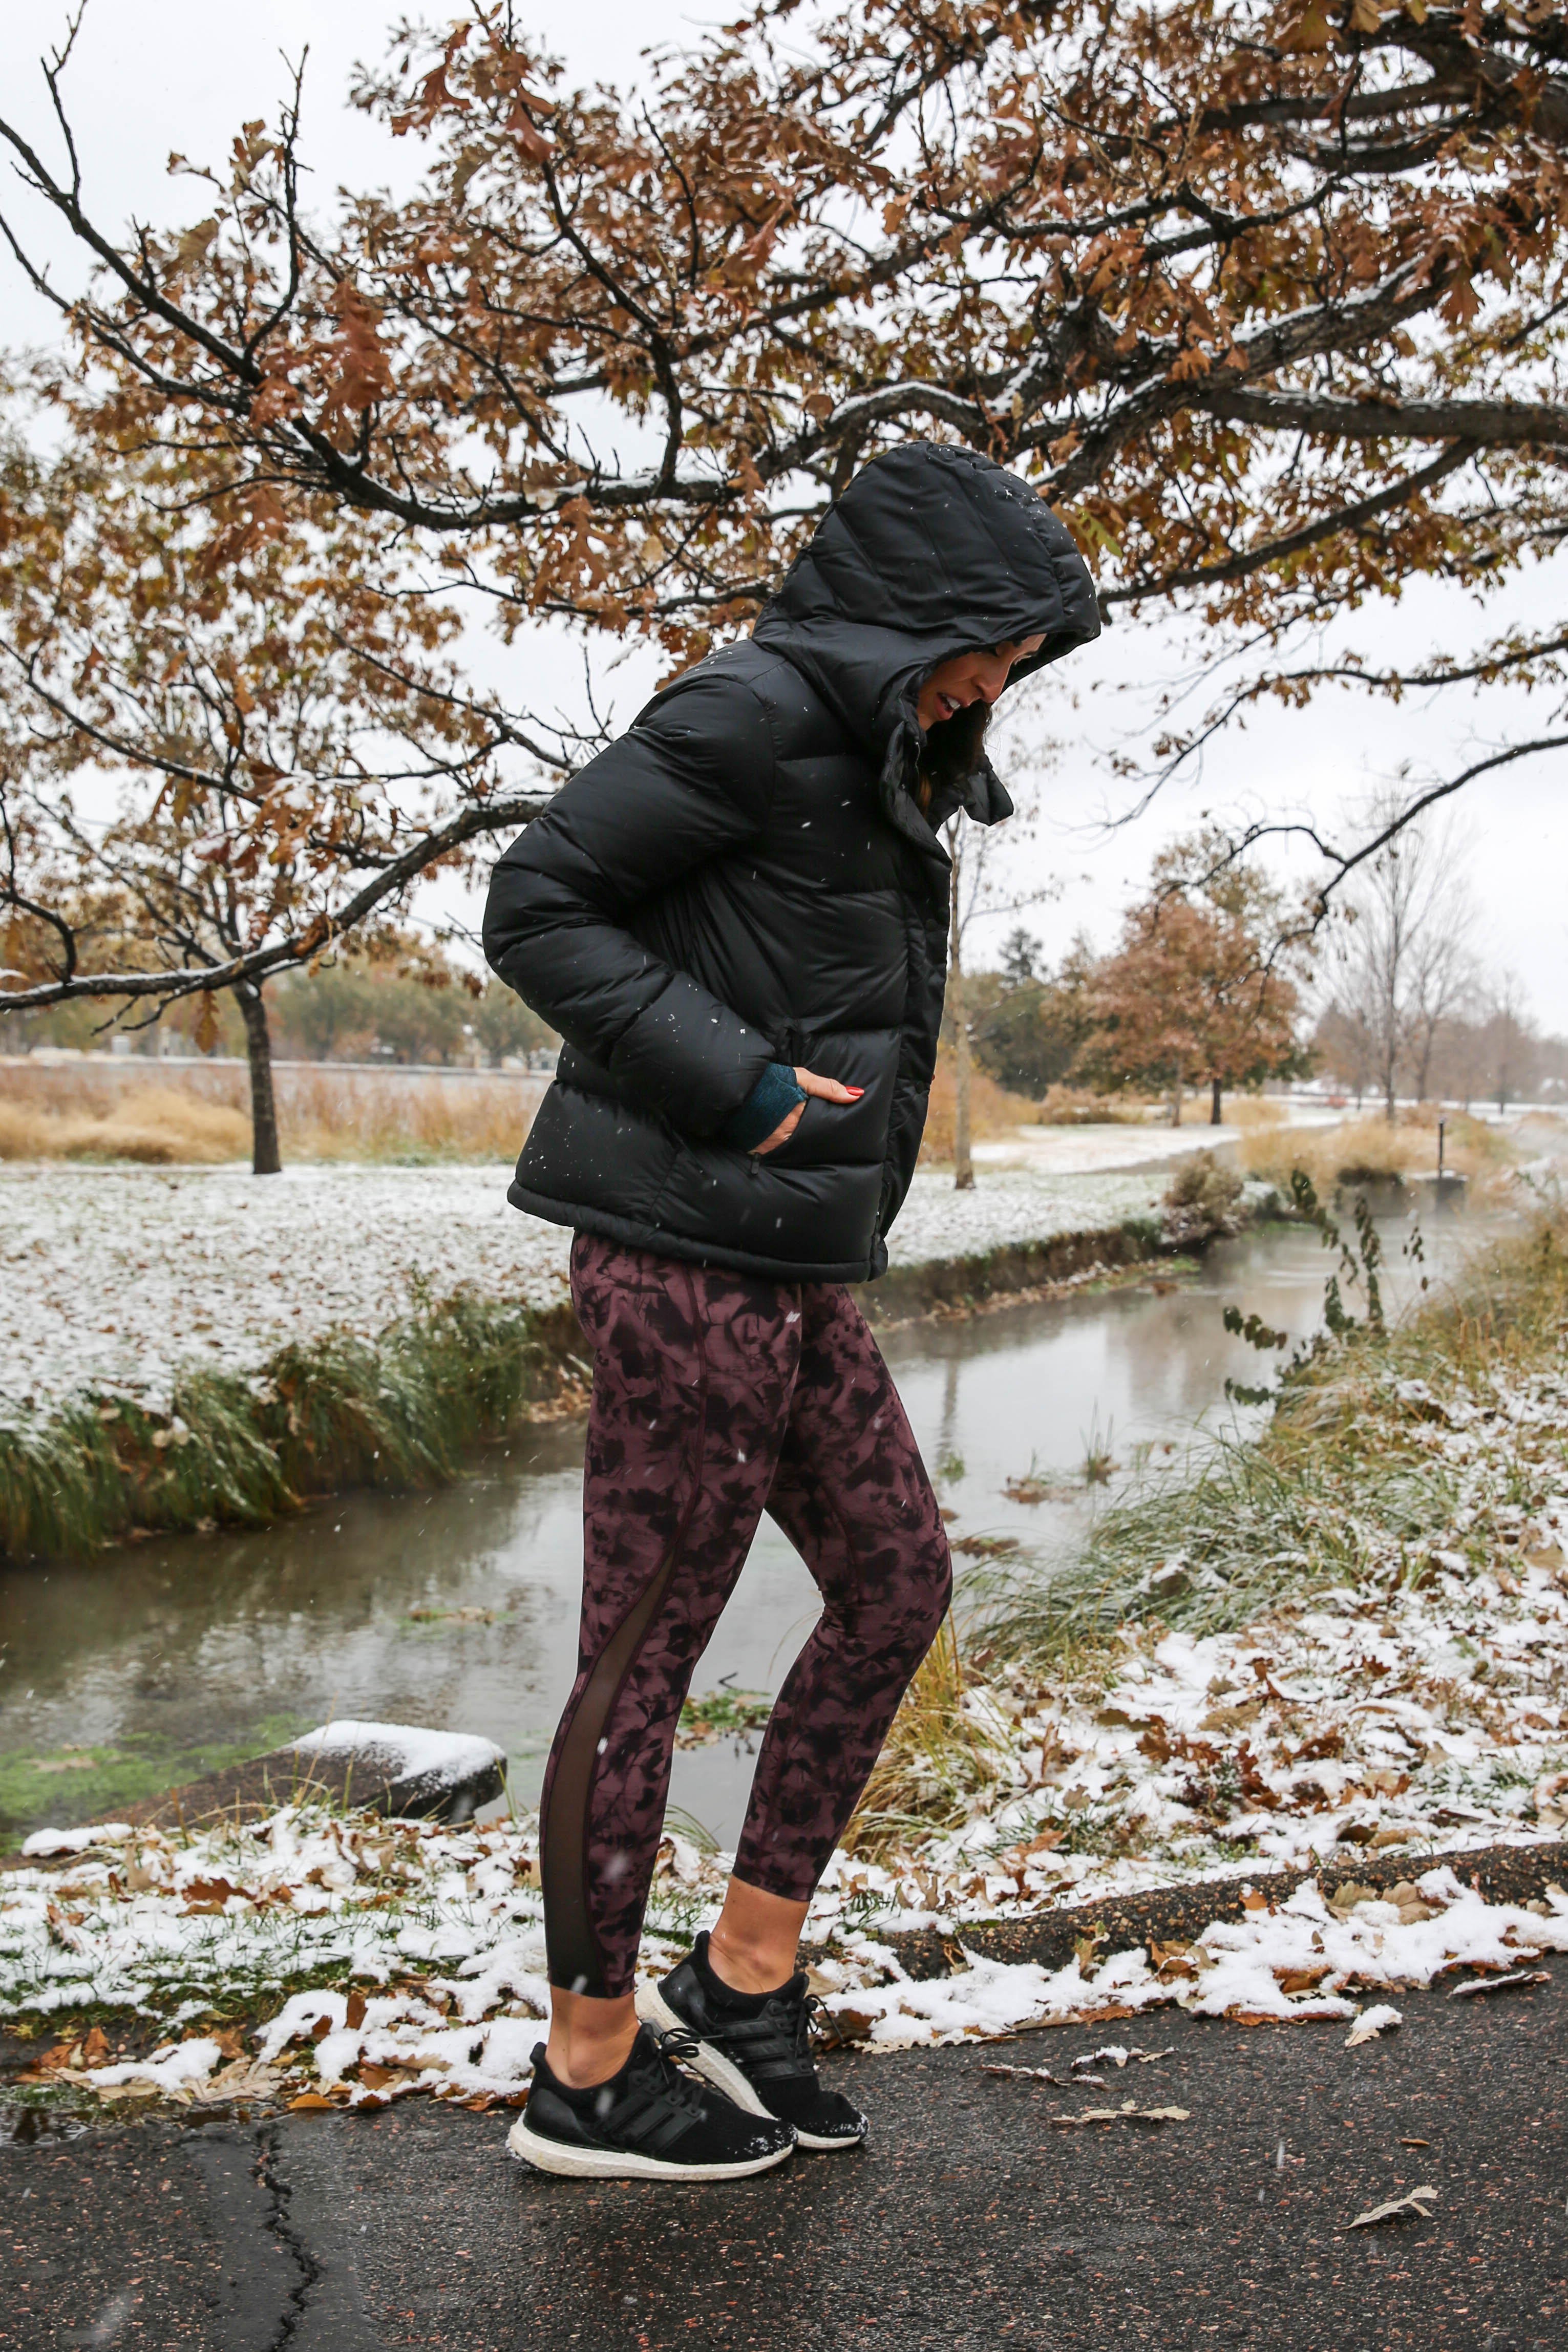 PaleOMG Holiday Gift Ideas For Your Fitness Enthusiast